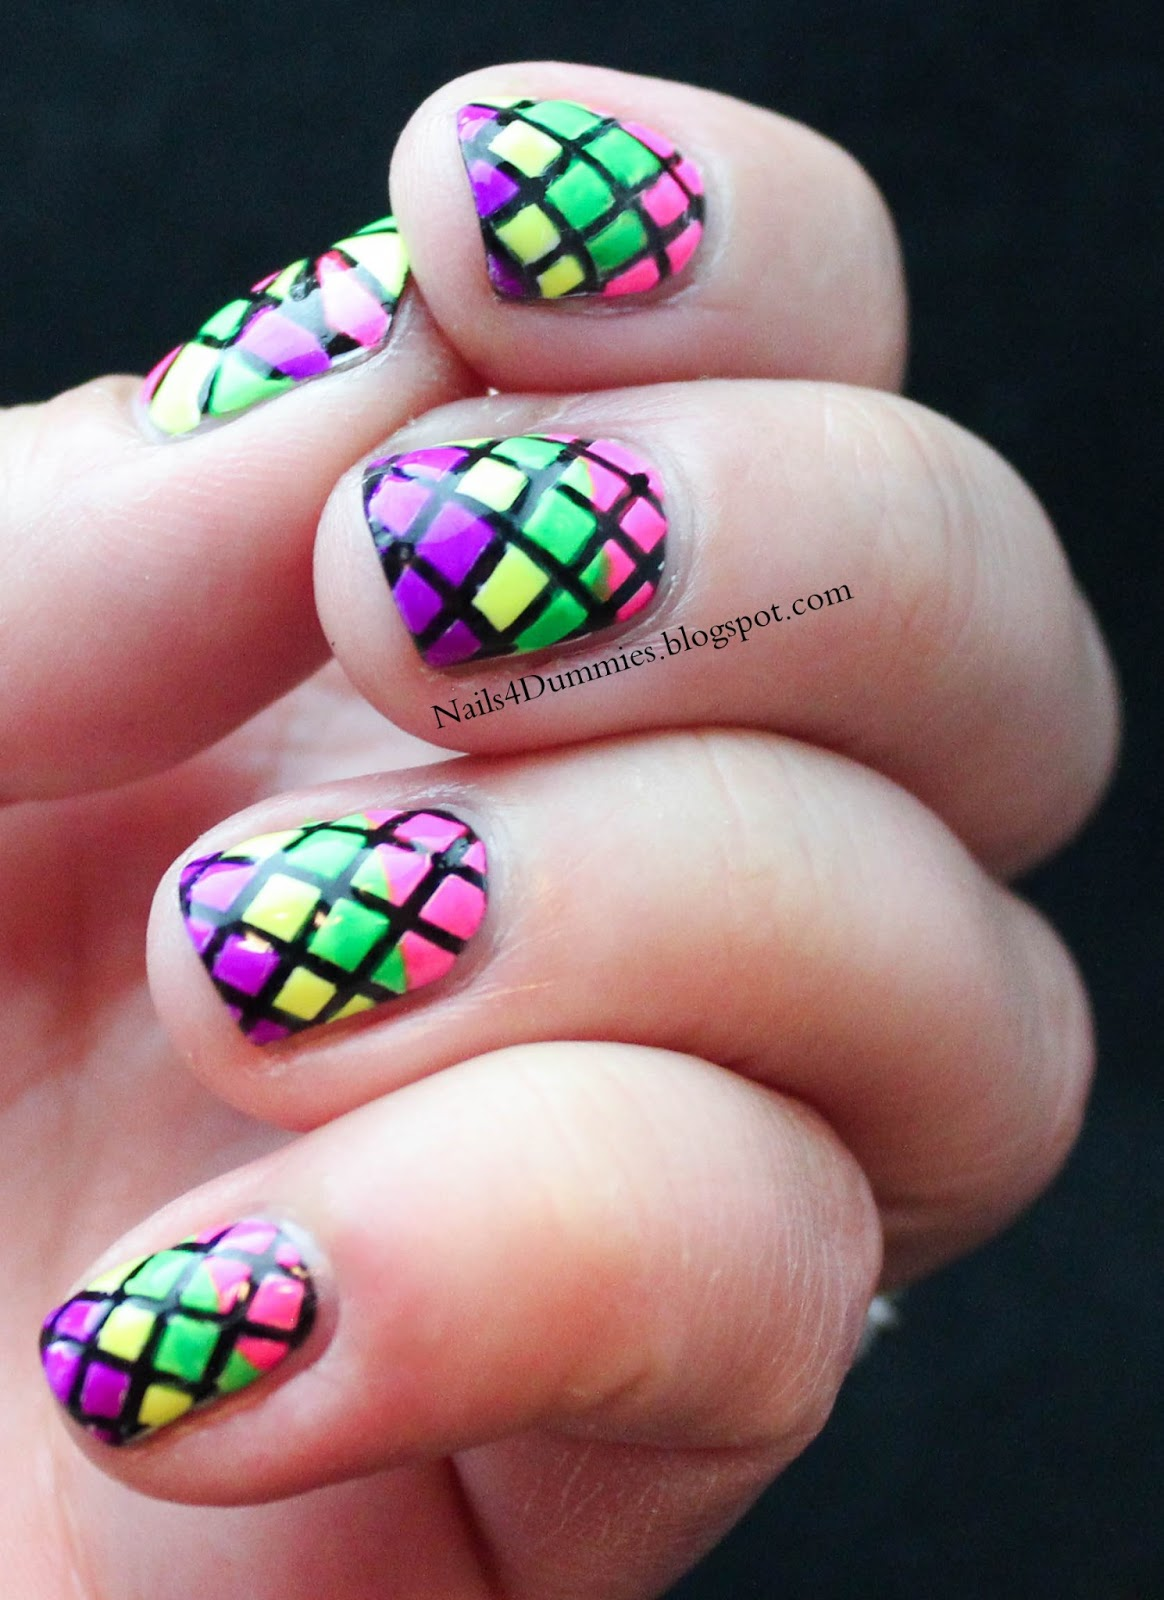 Nails 4 Dummies!: Stained Glass Nails